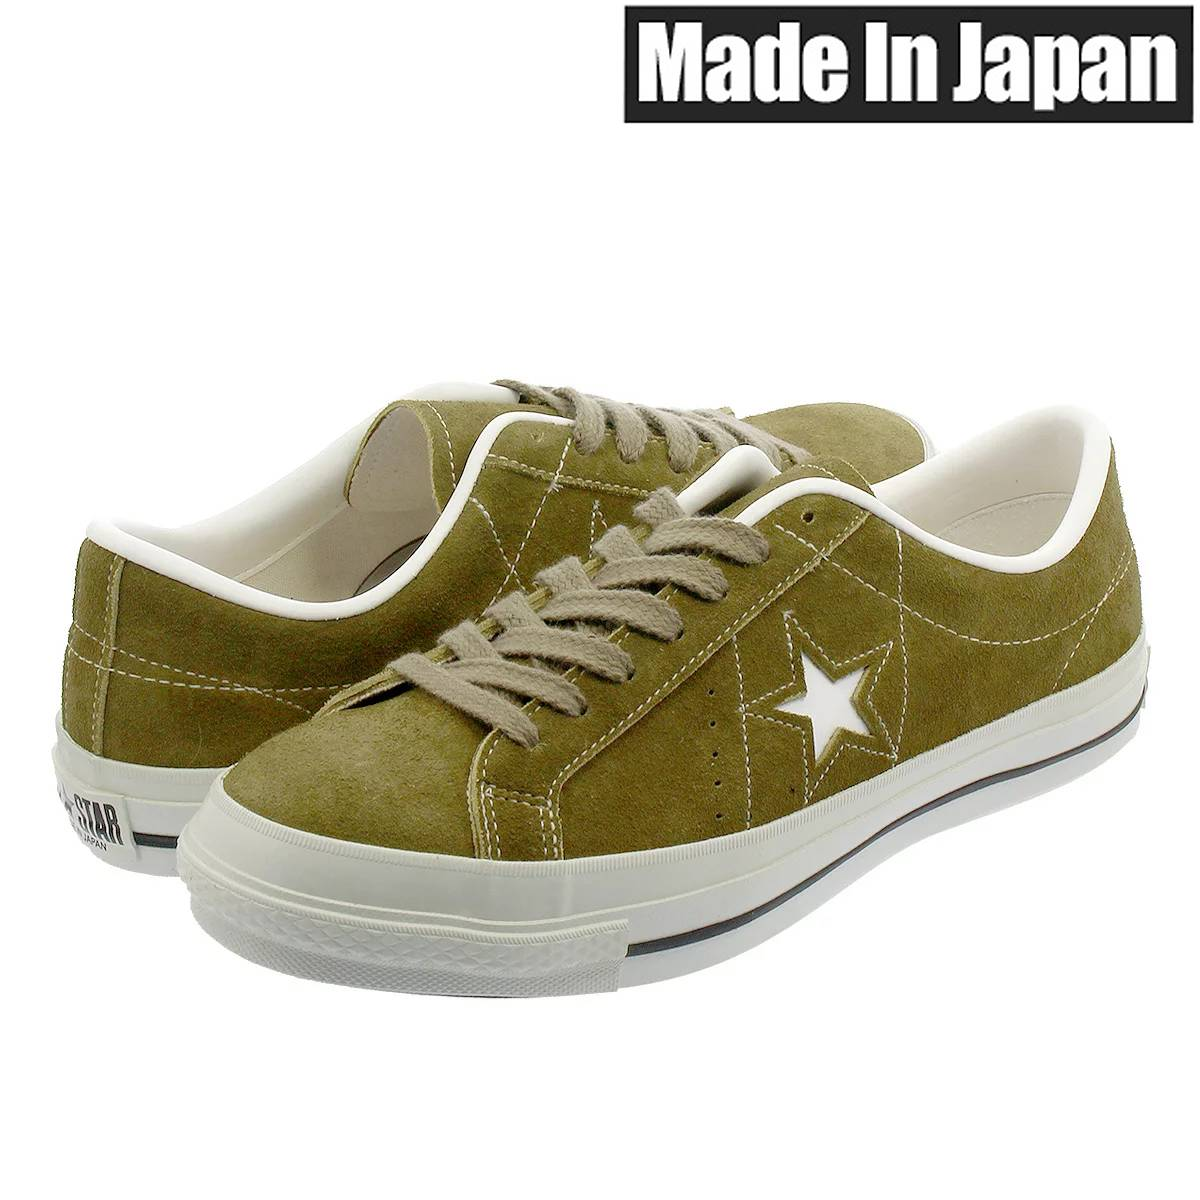 CONVERSE ONE STAR J SUEDE 【日本製】 コンバース ワンスター J スエード OLIVE 32356914